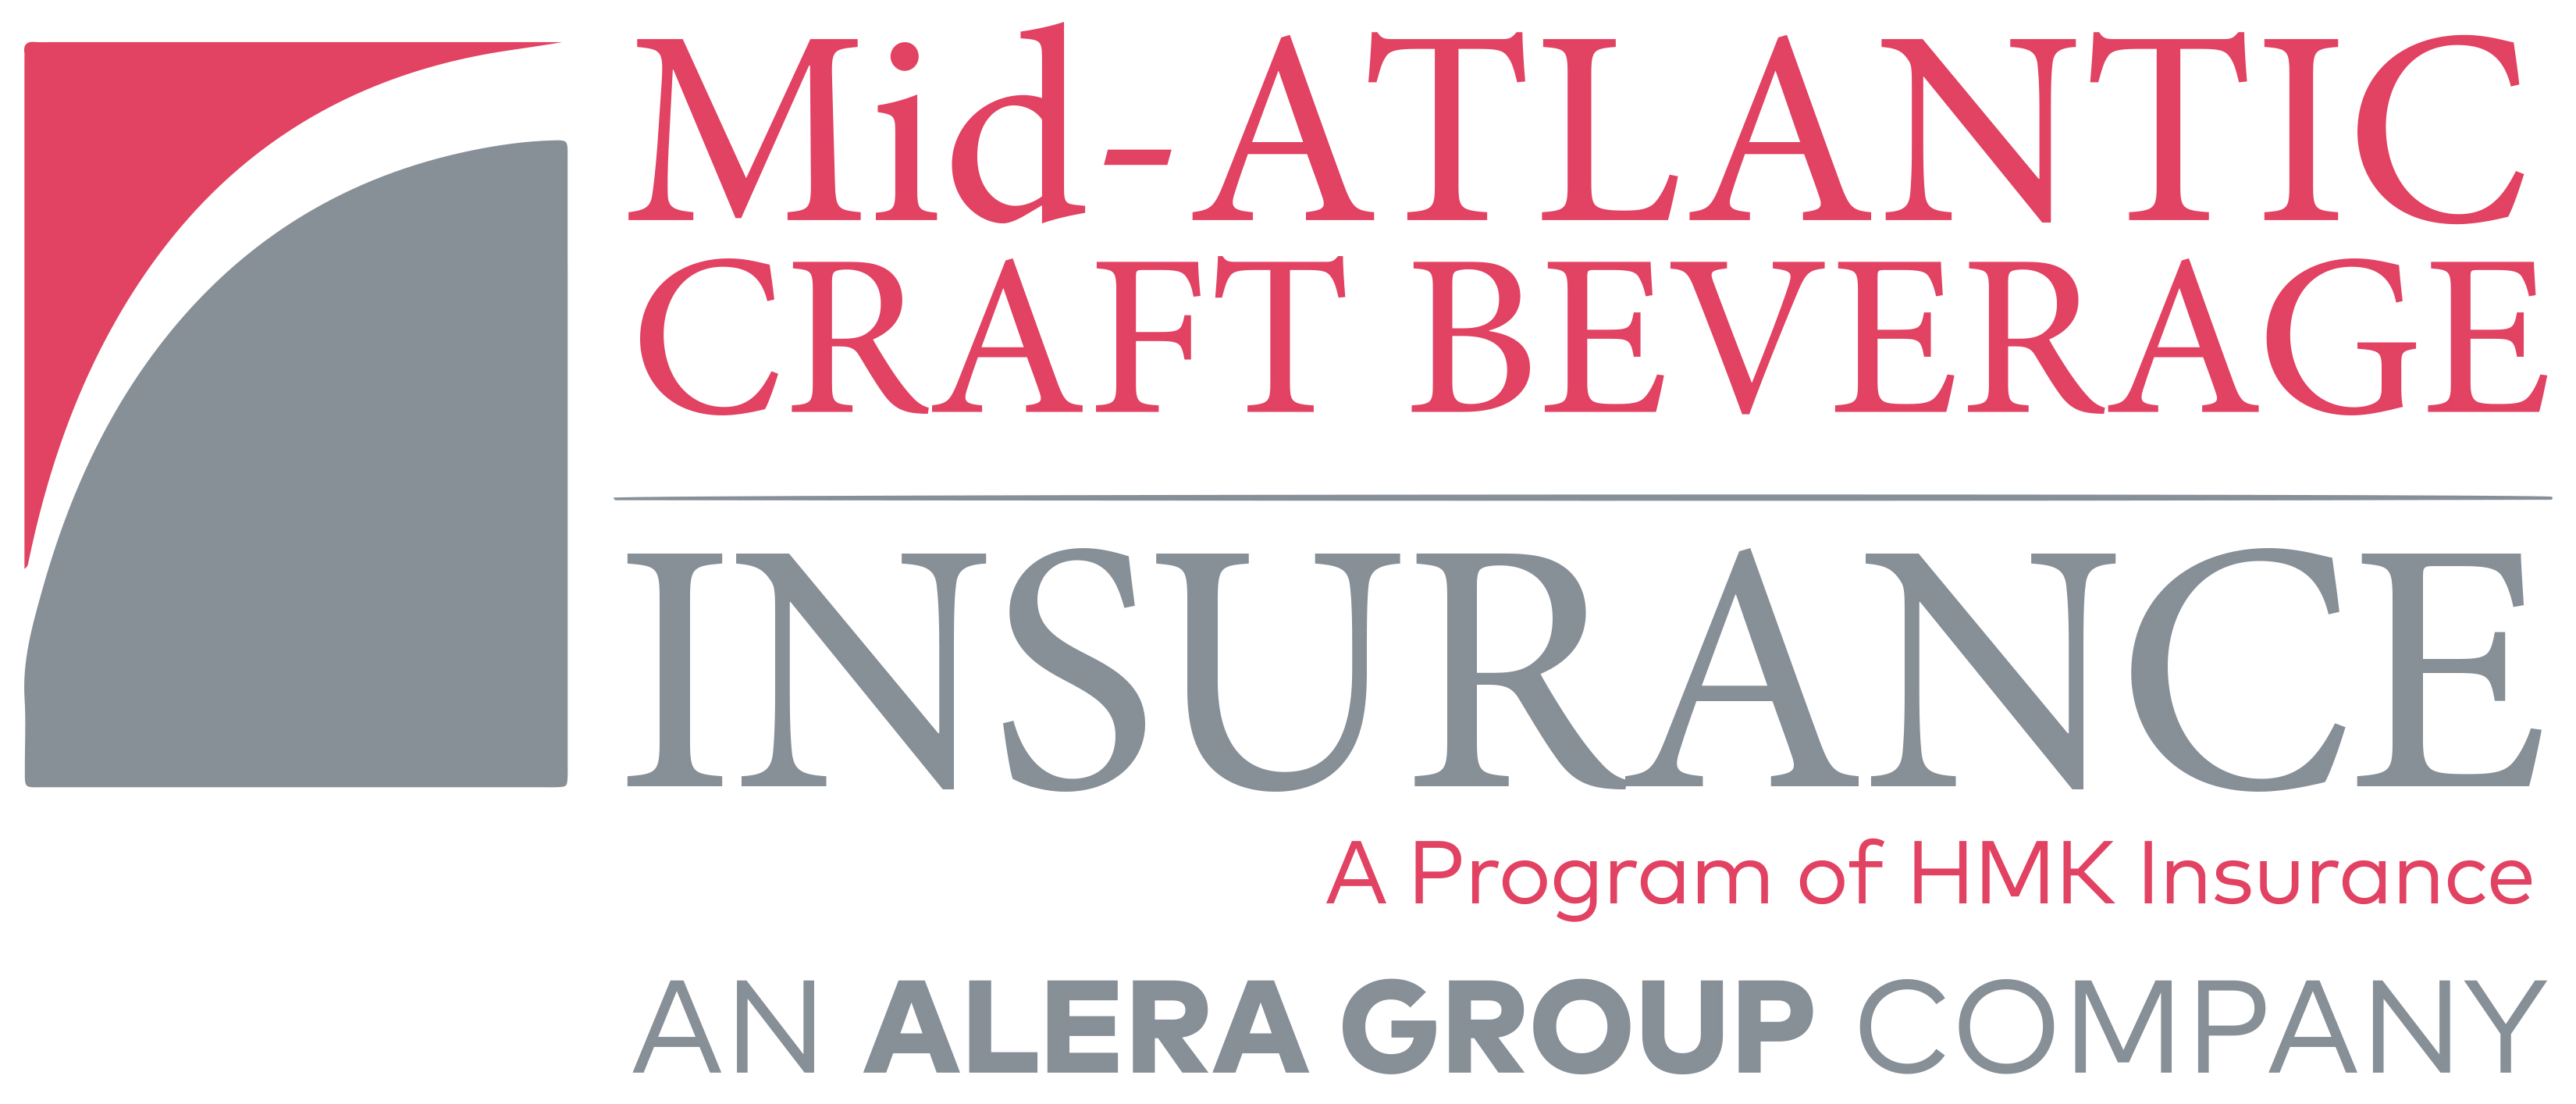 Mid-Atlantic Craft Beverage Insurance